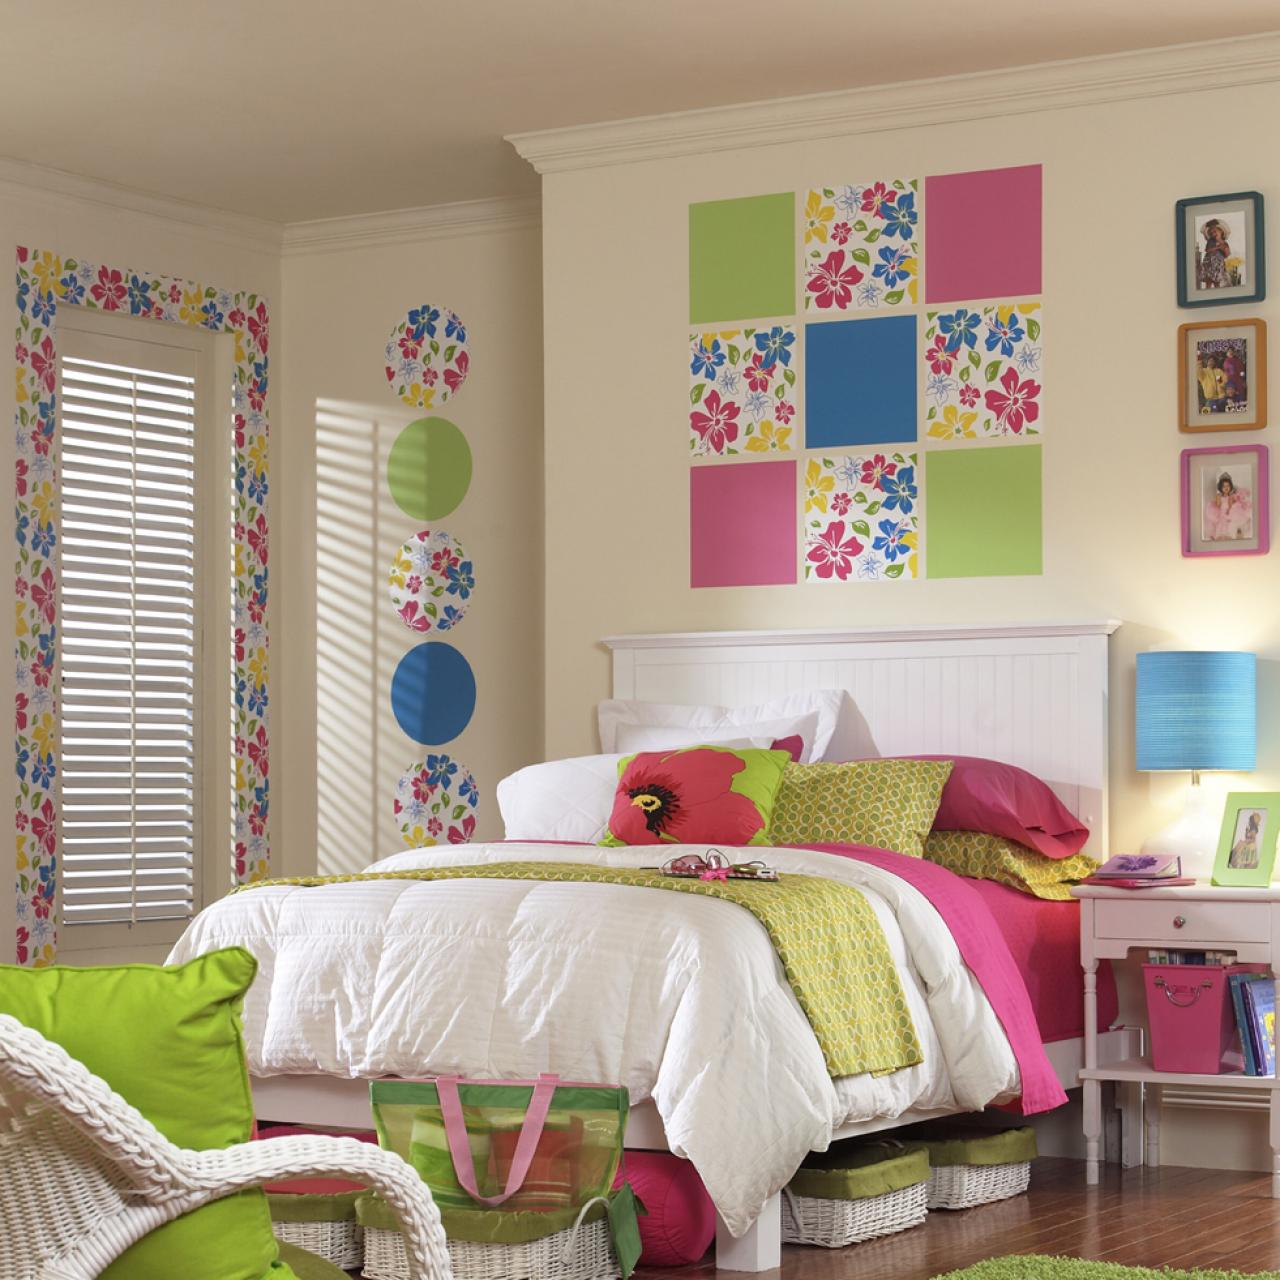 Colorful Kids Room Design: Kids Room Ideas For Playroom